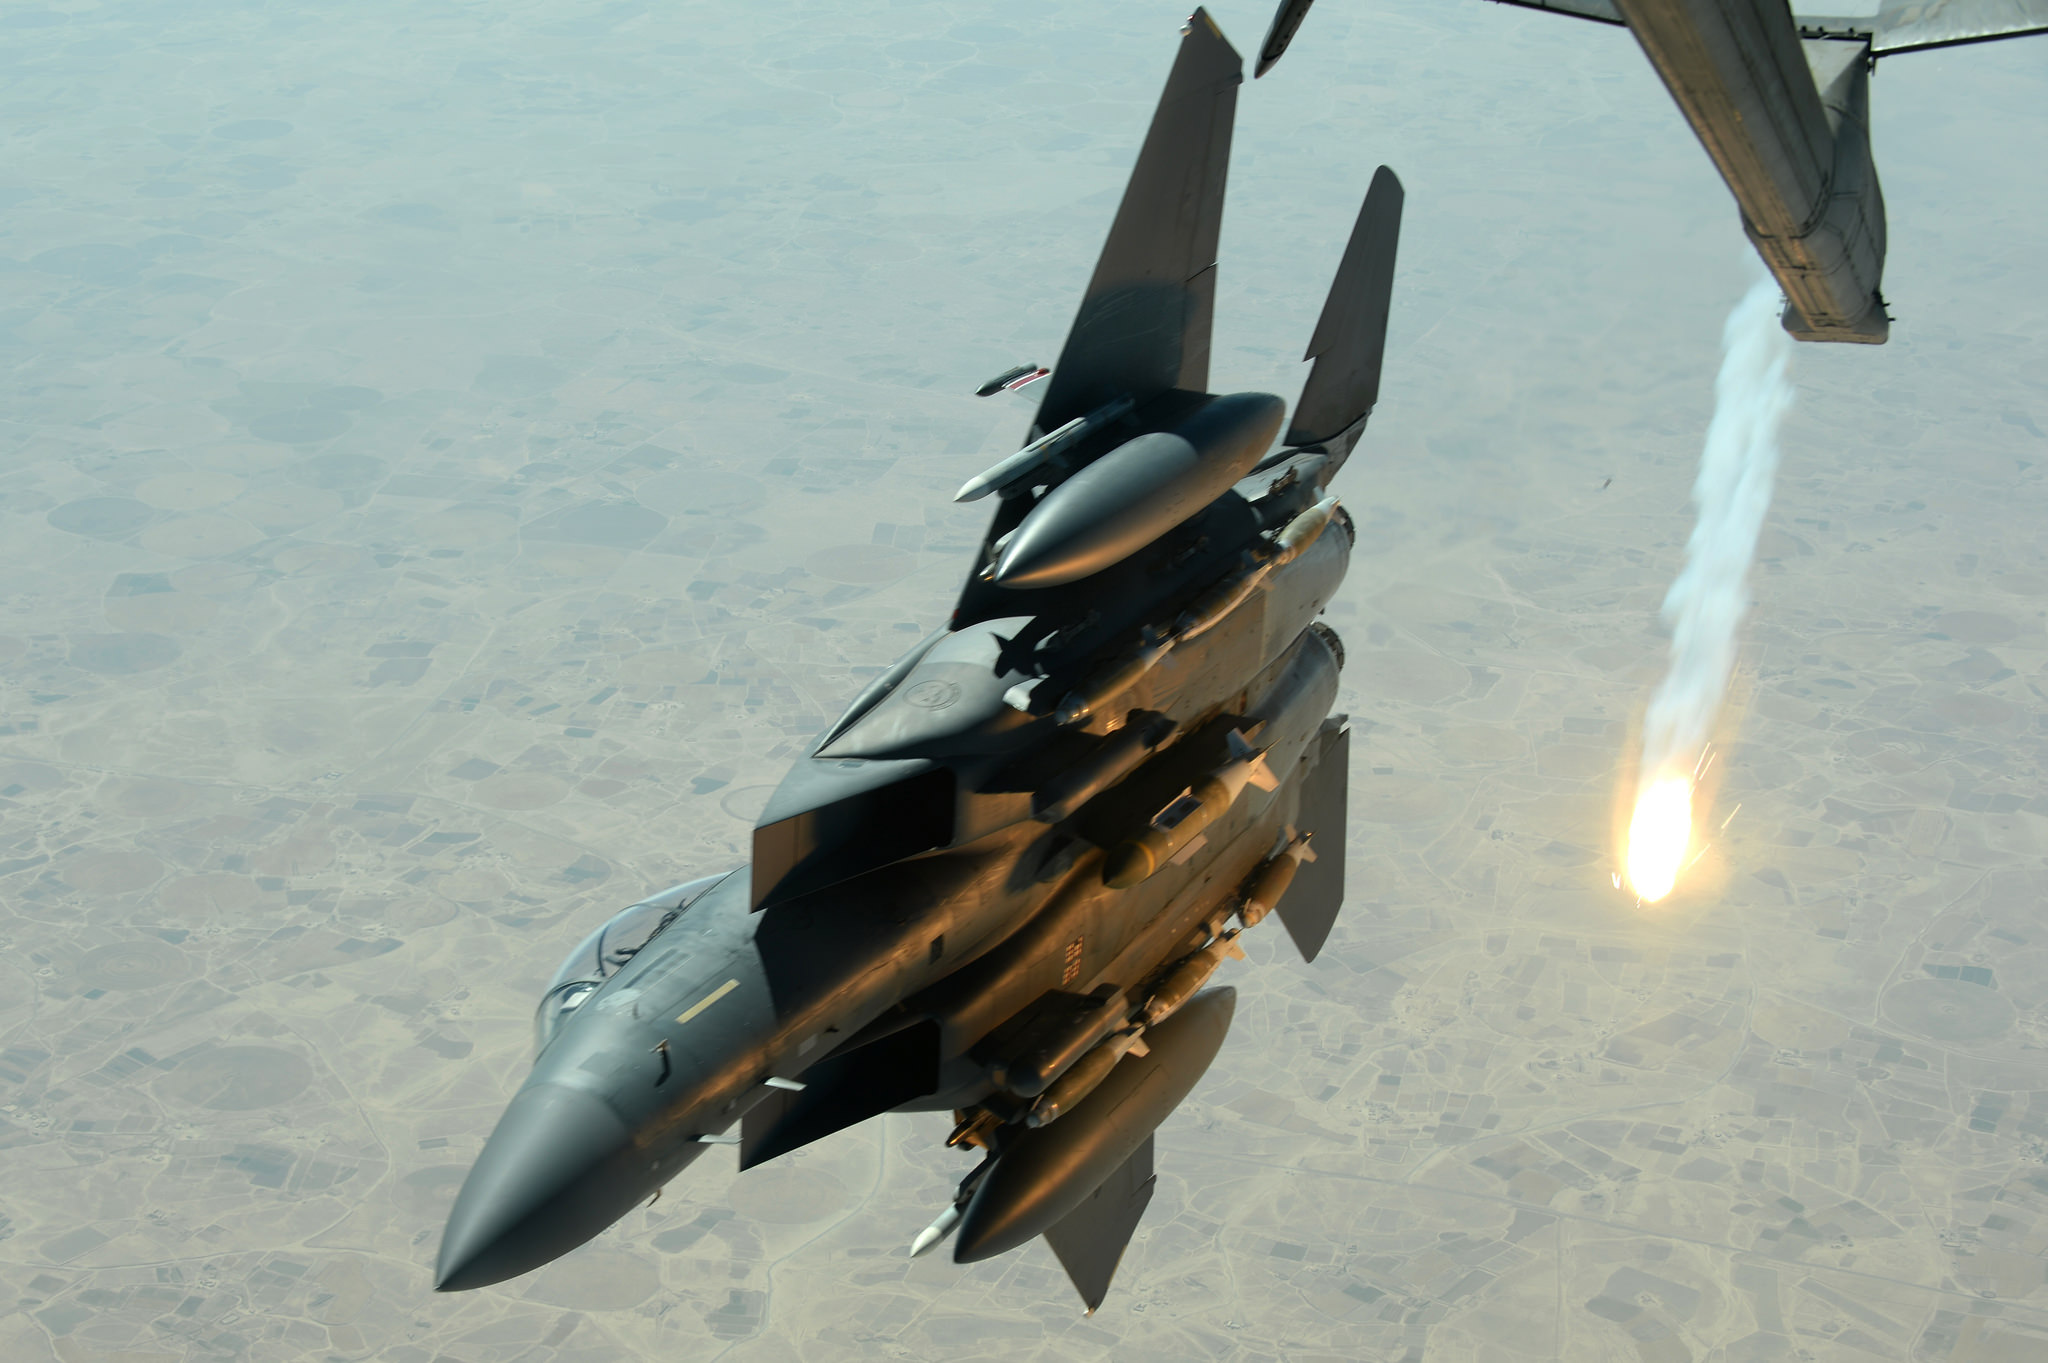 A U.S. Air Force F-15E Strike Eagle pops a flare while departing after refueling with a USAF KC-10 Extender aircraft over Southwest Asia in support of Operation Inherent Resolve, Aug. 30, 2015. U.S. Air Force photo by Staff Sgt. Sandra Welch